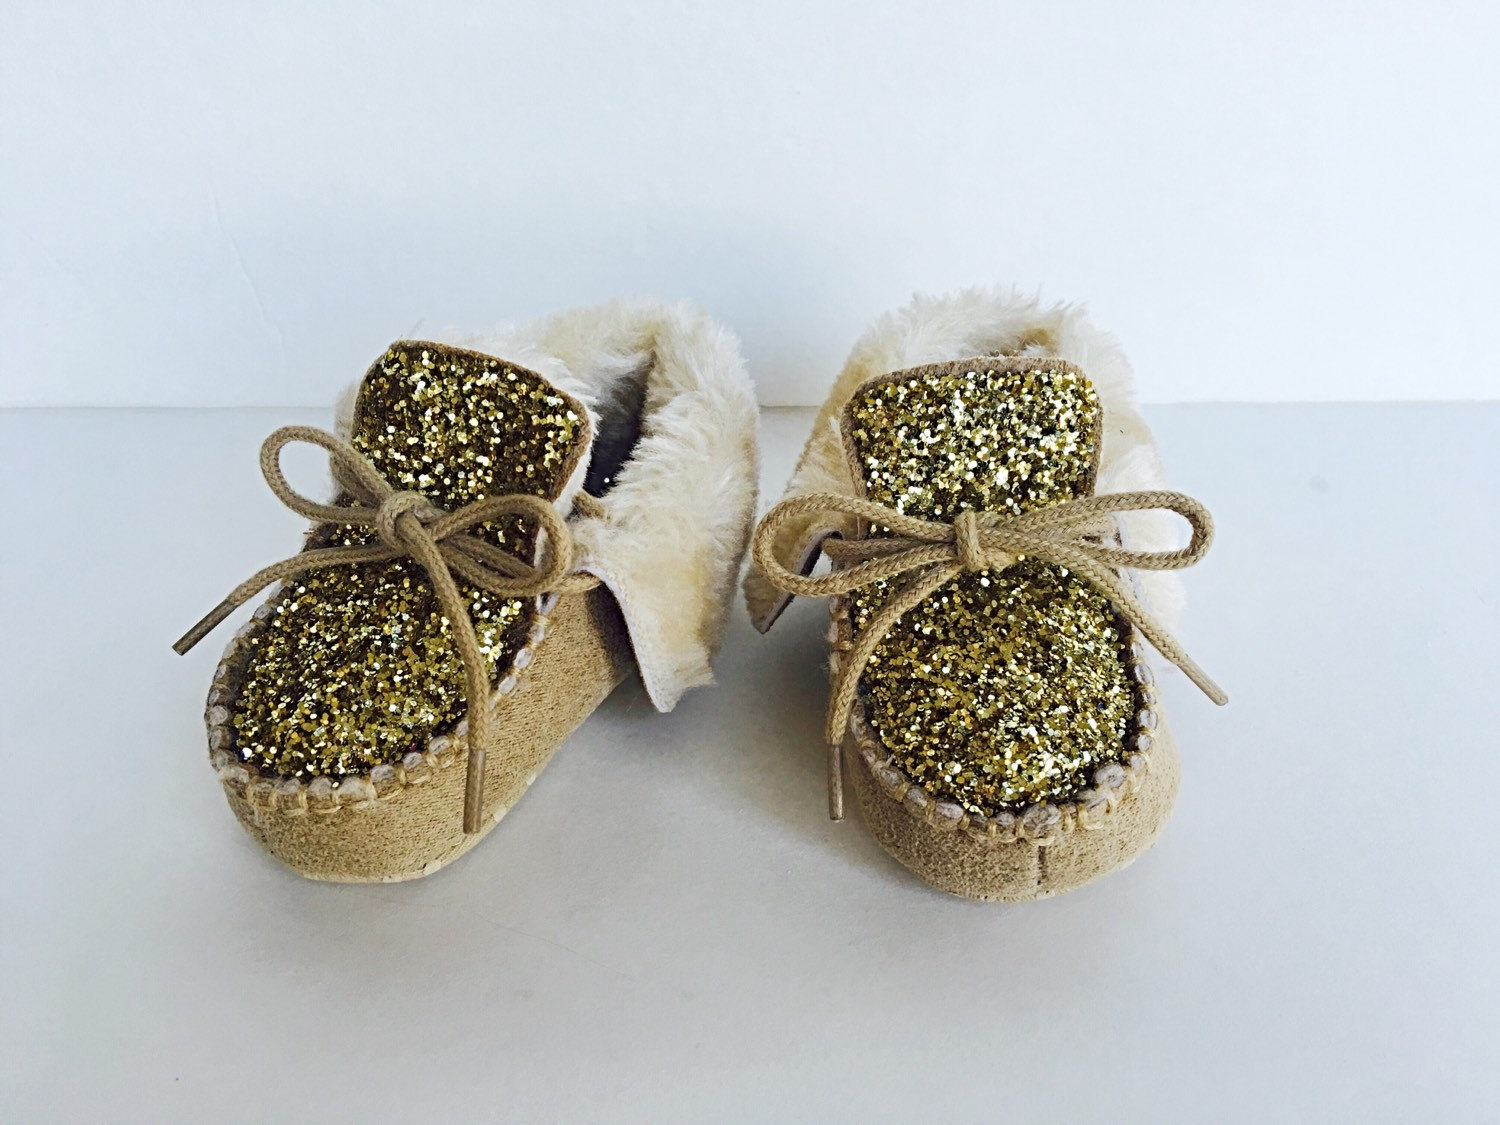 438794578b457 Glitter Baby Shoes - Brown Khaki Baby Boots - Gold Sparkly Shoes - Glitzy  Moccassins - Kids Suede Toddler Shoes